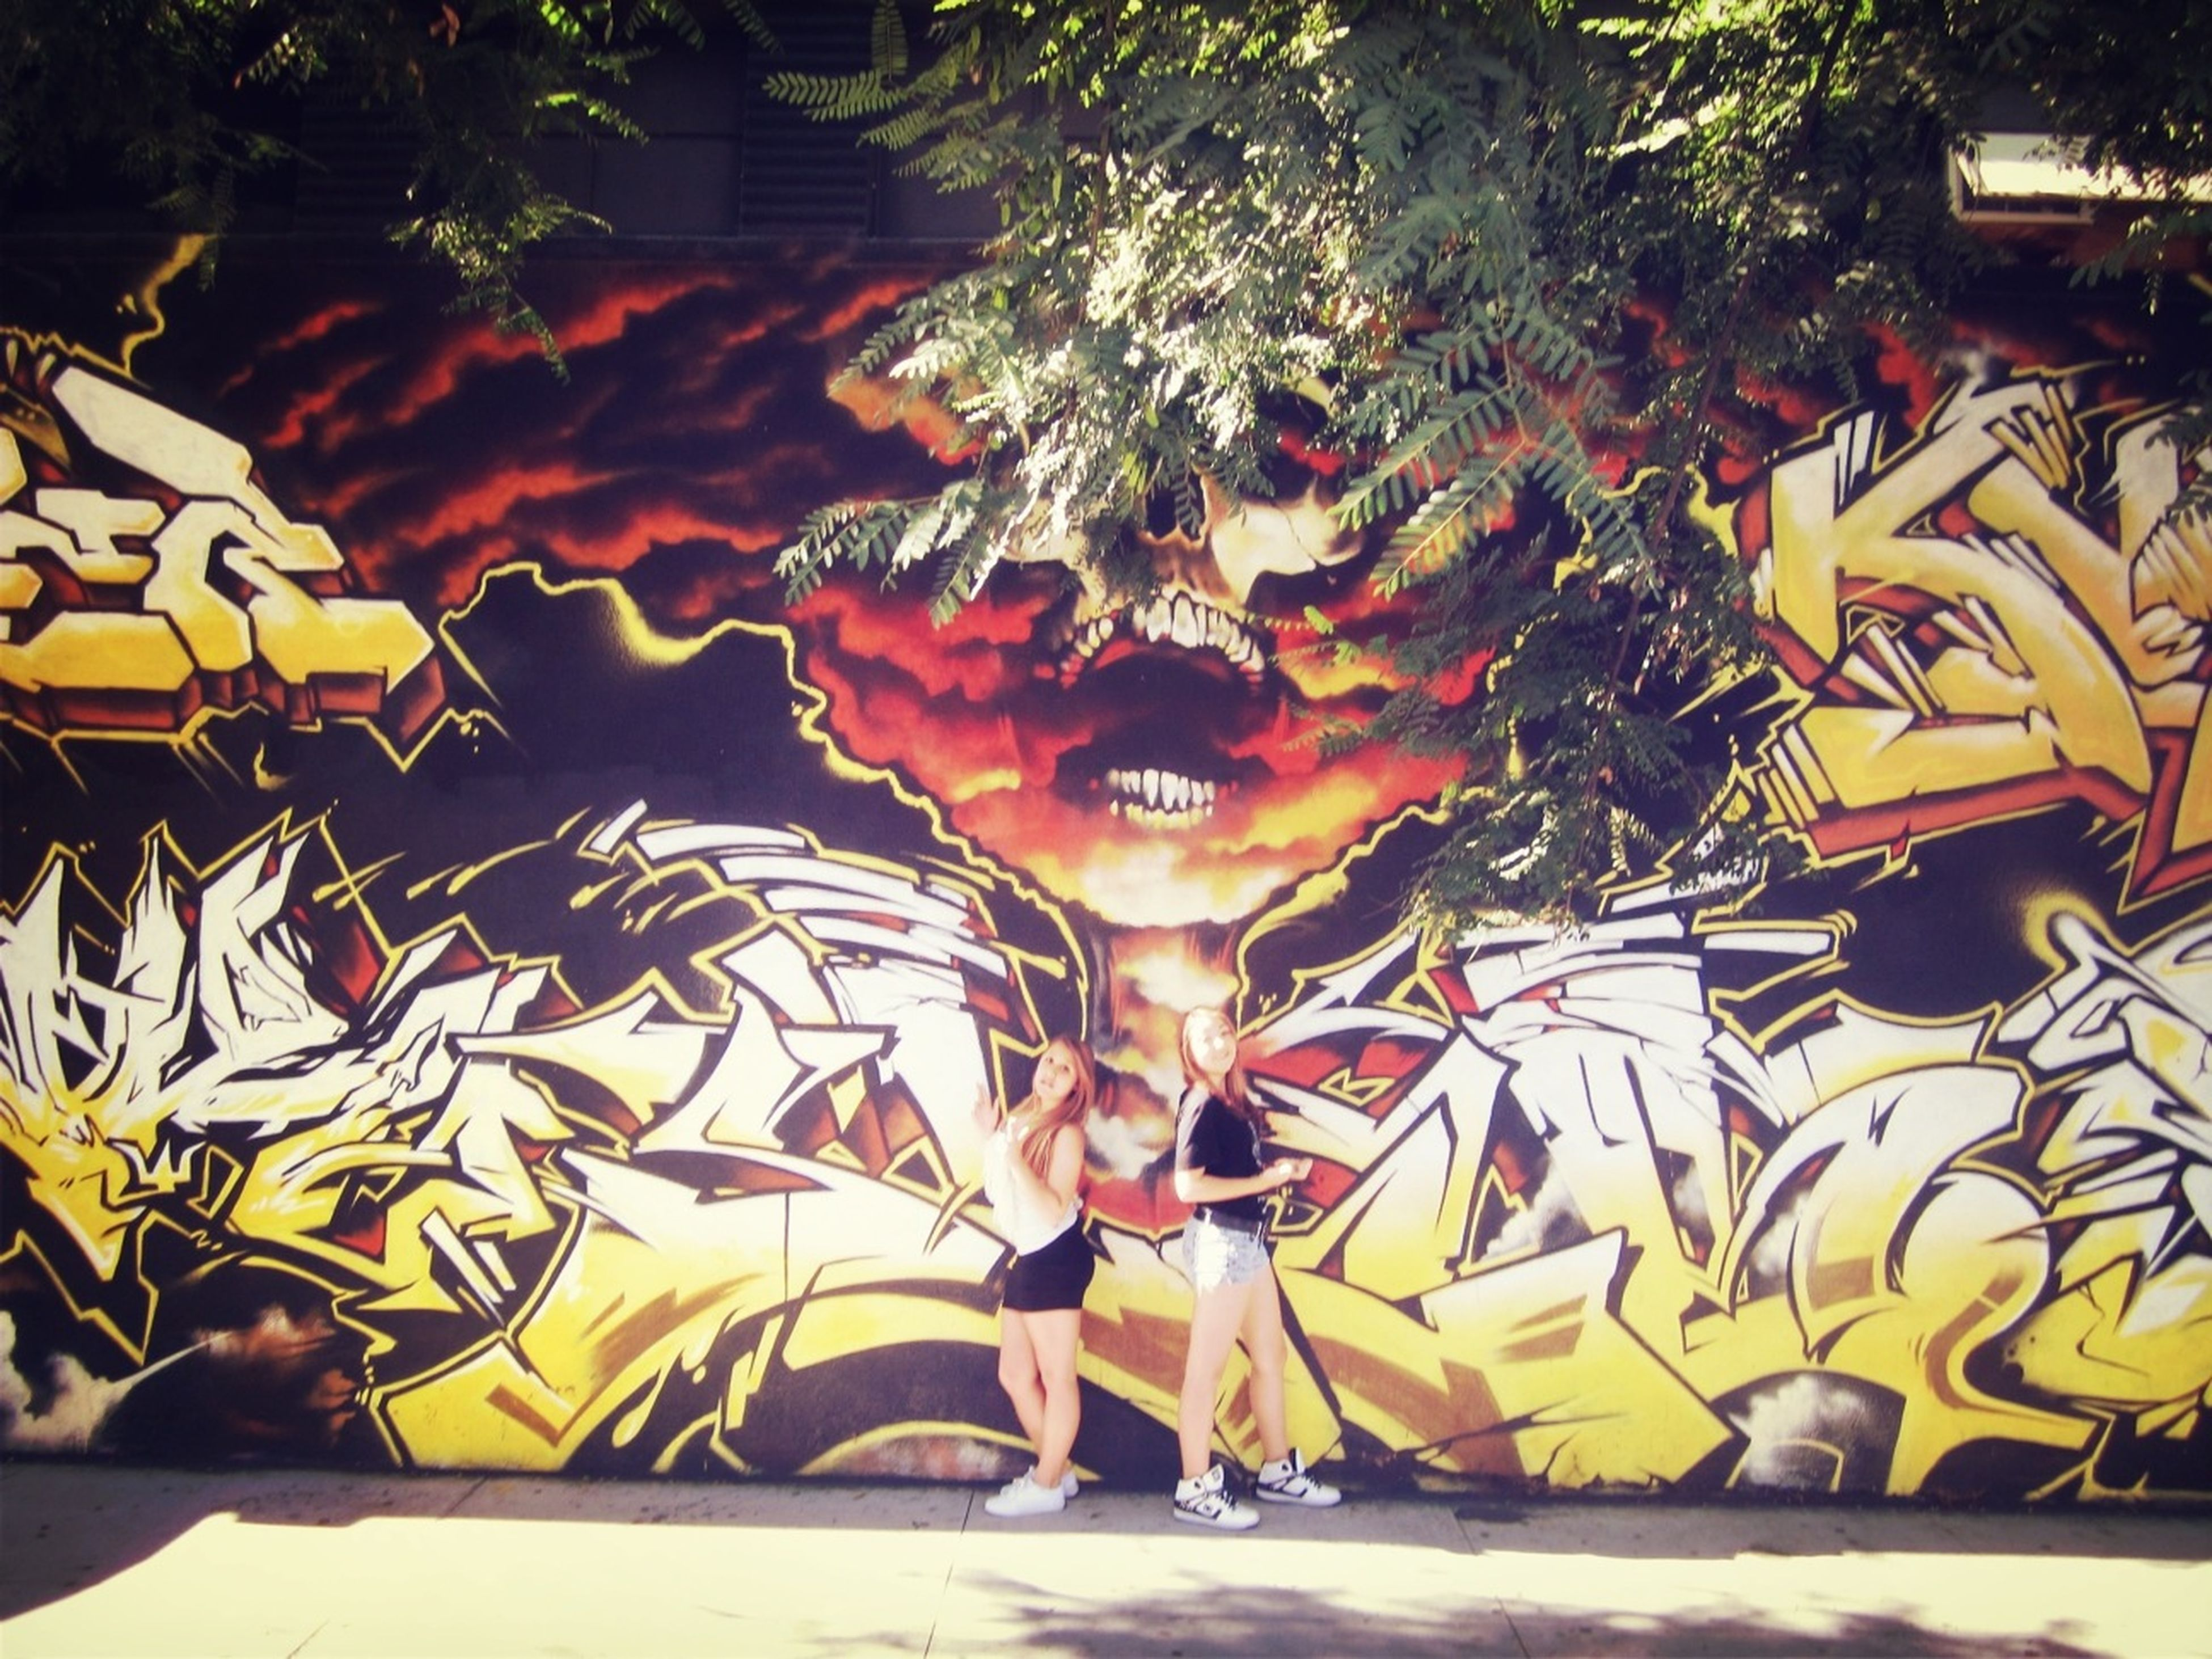 art and craft, art, creativity, tree, graffiti, built structure, architecture, building exterior, yellow, outdoors, day, street, sunlight, no people, wall - building feature, multi colored, park - man made space, incidental people, shadow, street art